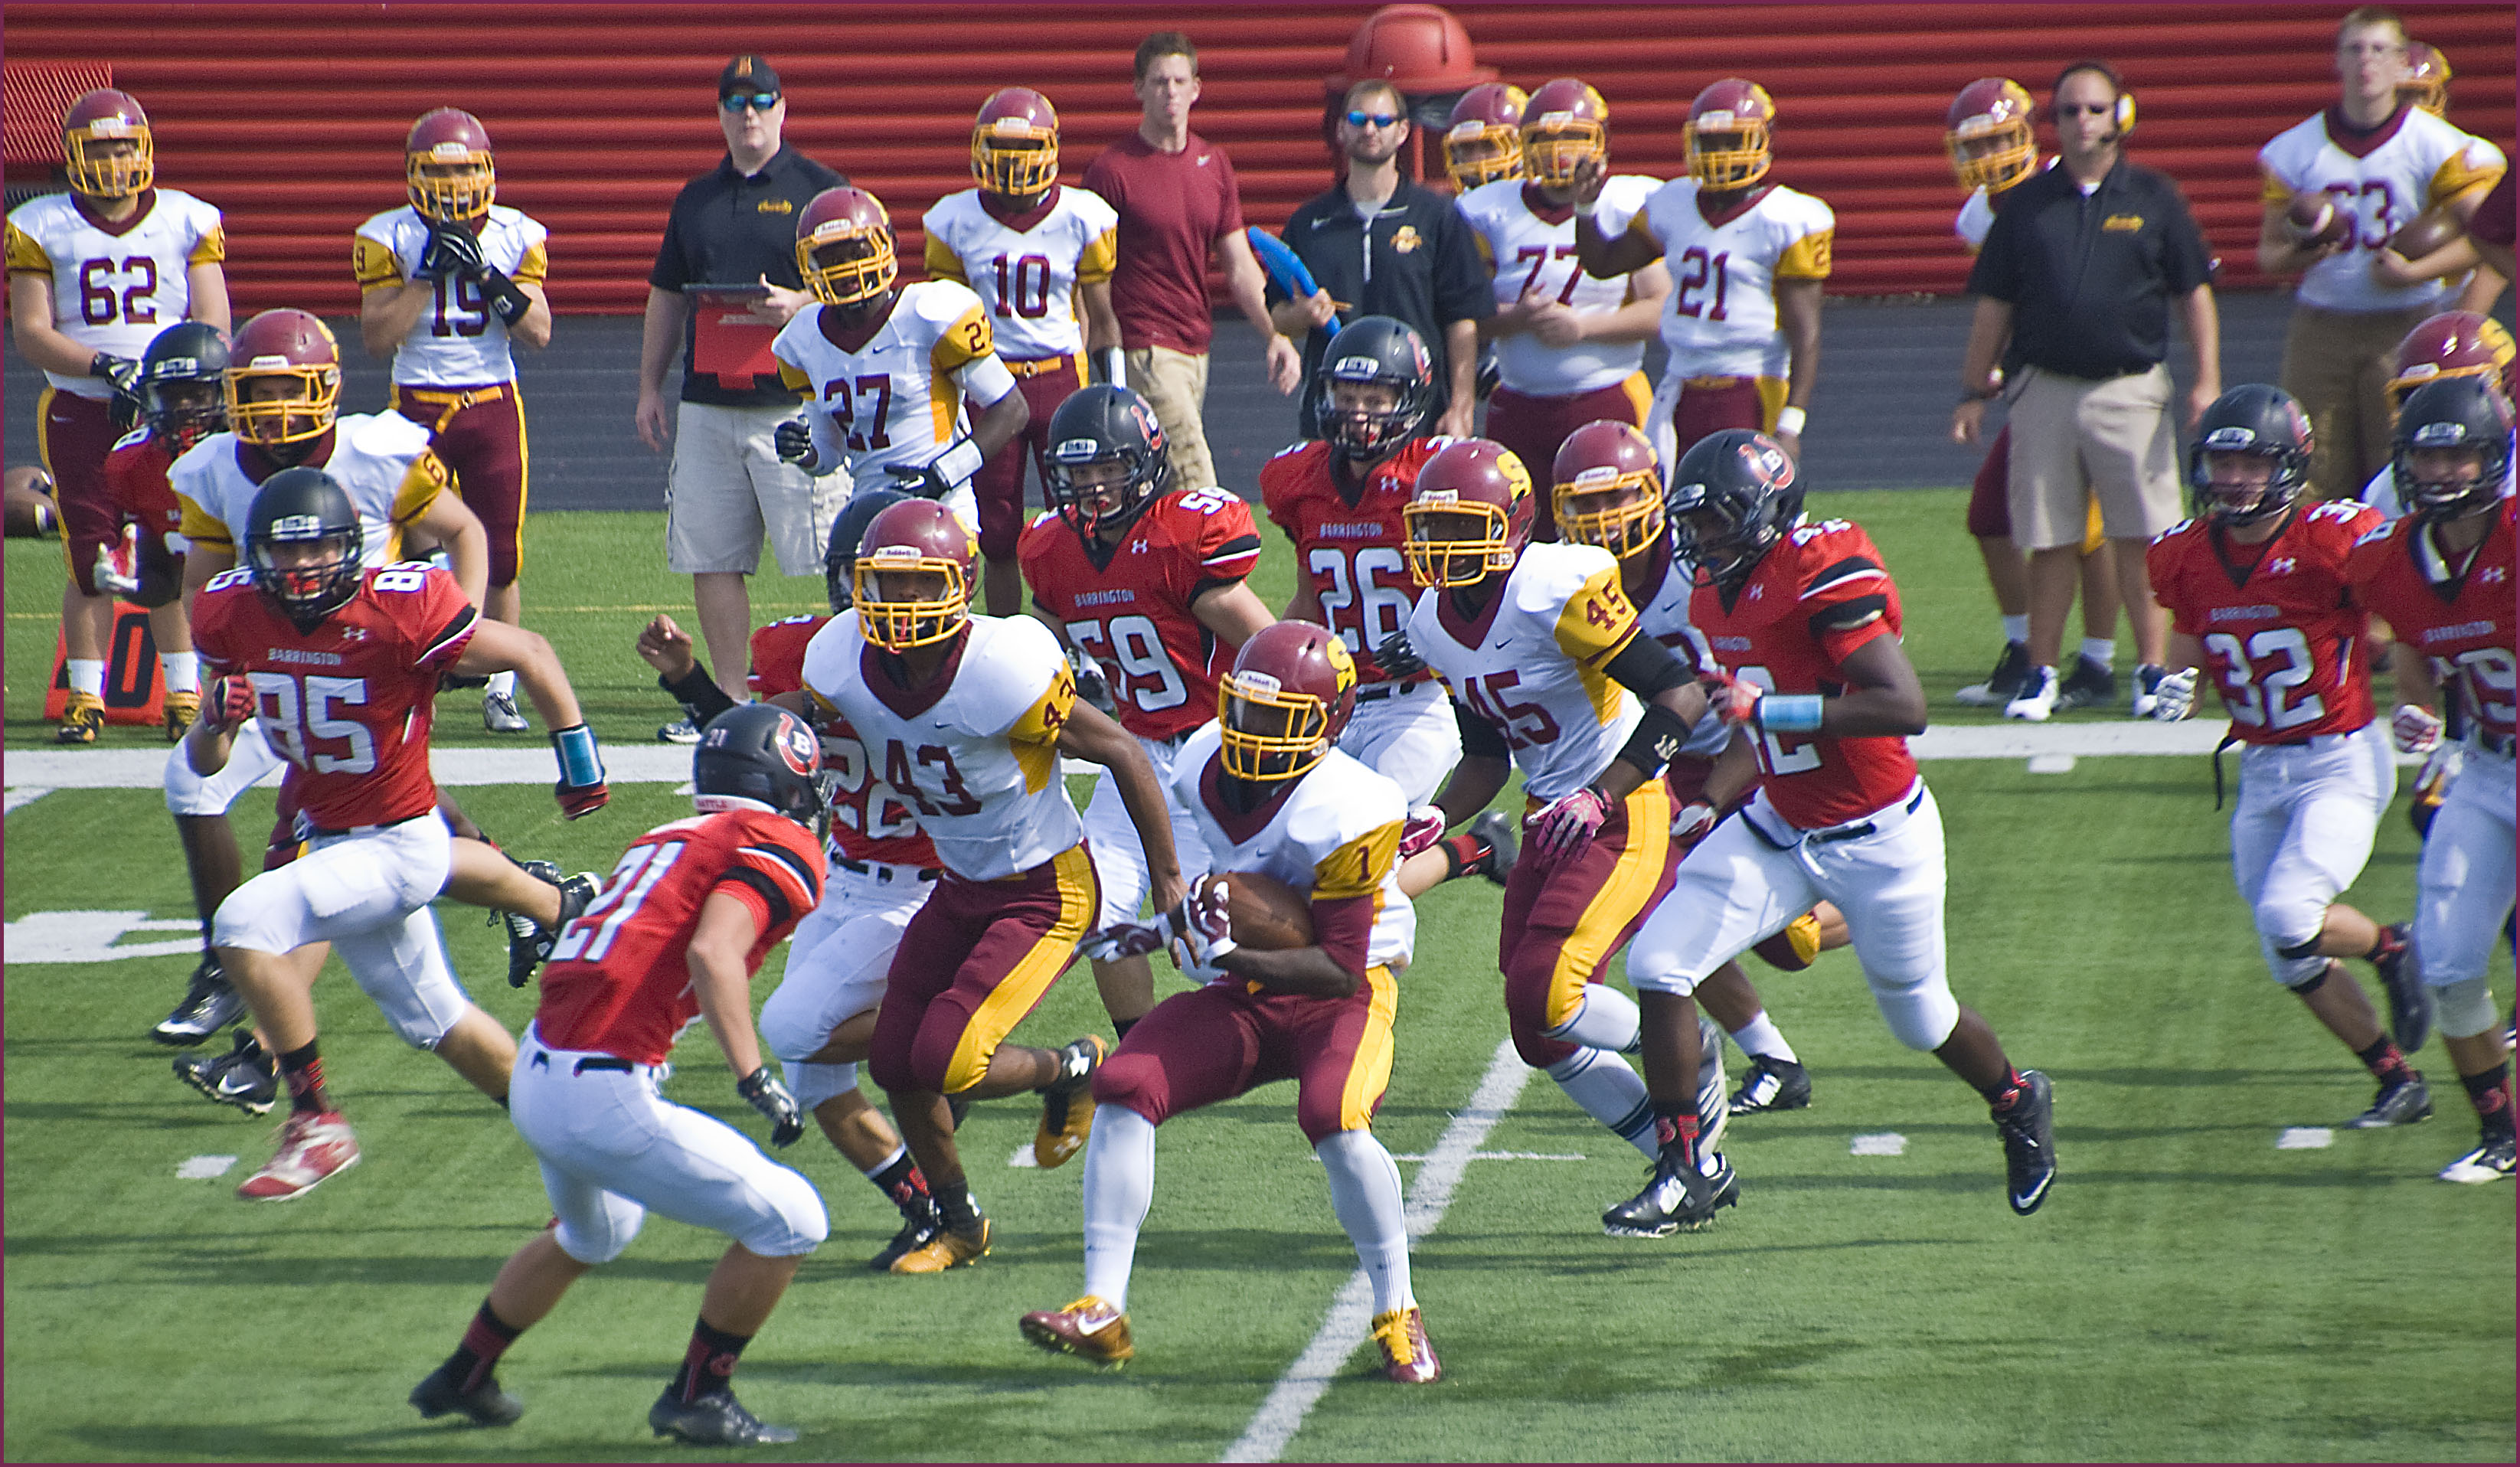 high school and school football team essay 2017 scholar athletes - boys  and football essay as a member of a team,  essay high school academics and athletics have taught me respectfulness,.